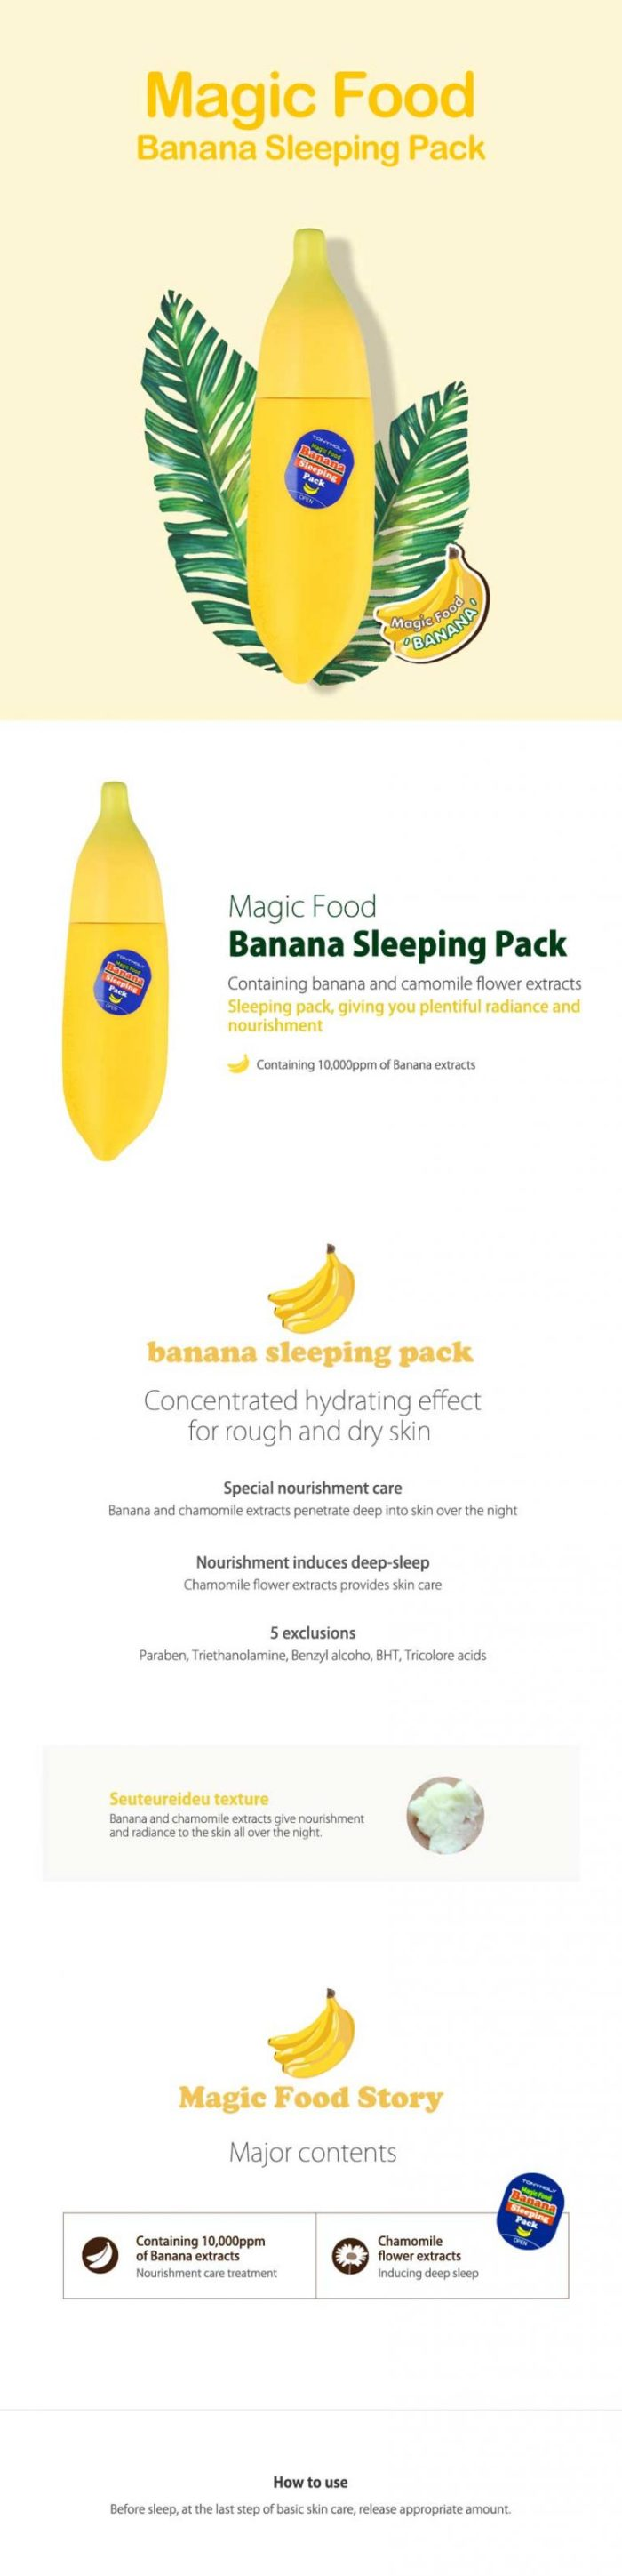 http://beautynetkorea.com/product/TONYMOLY-Magic-Food-Banana-Sleeping-Pack-85ml/3324/